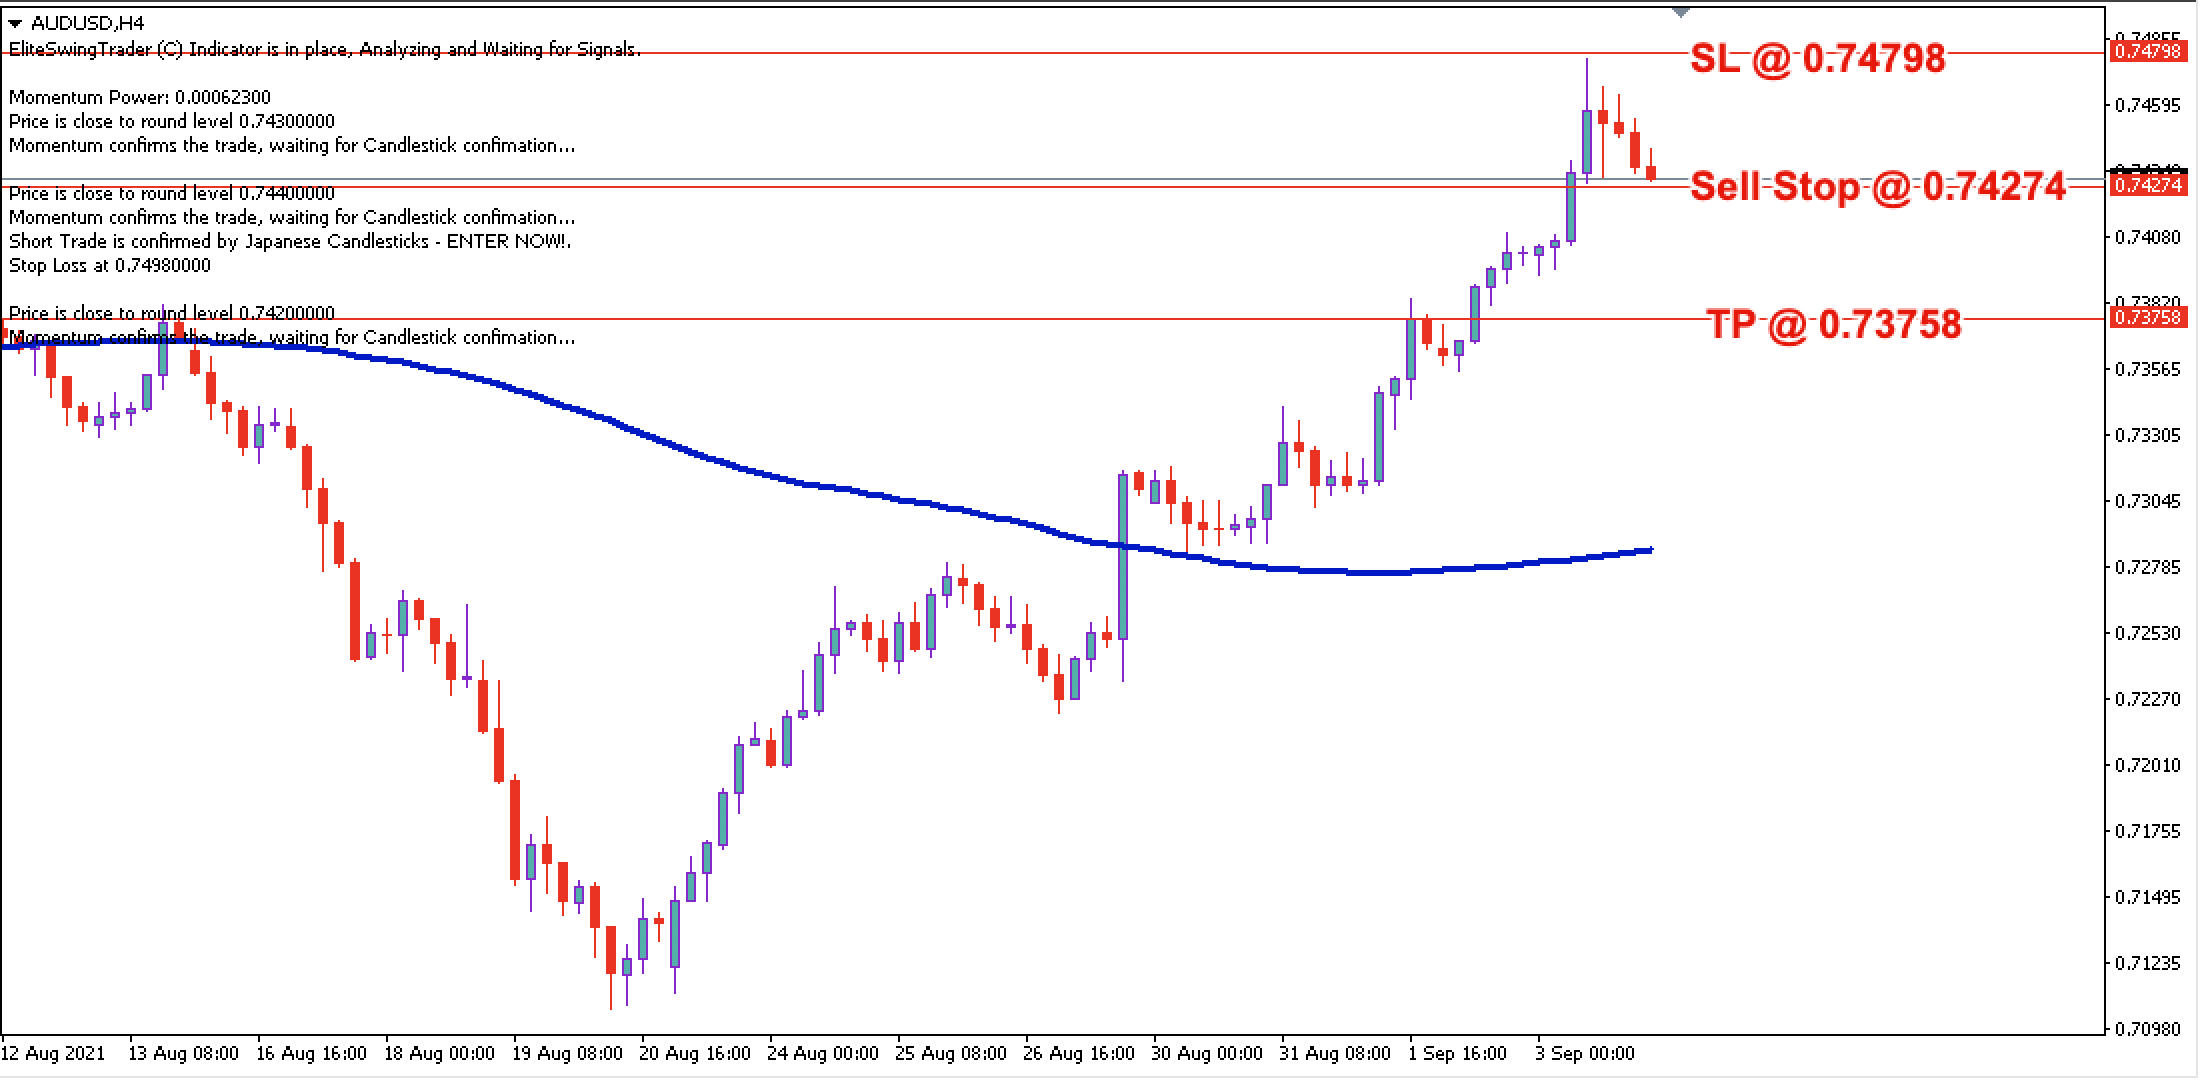 AUD/USD Daily Price Forecast – 6th Sept 2021